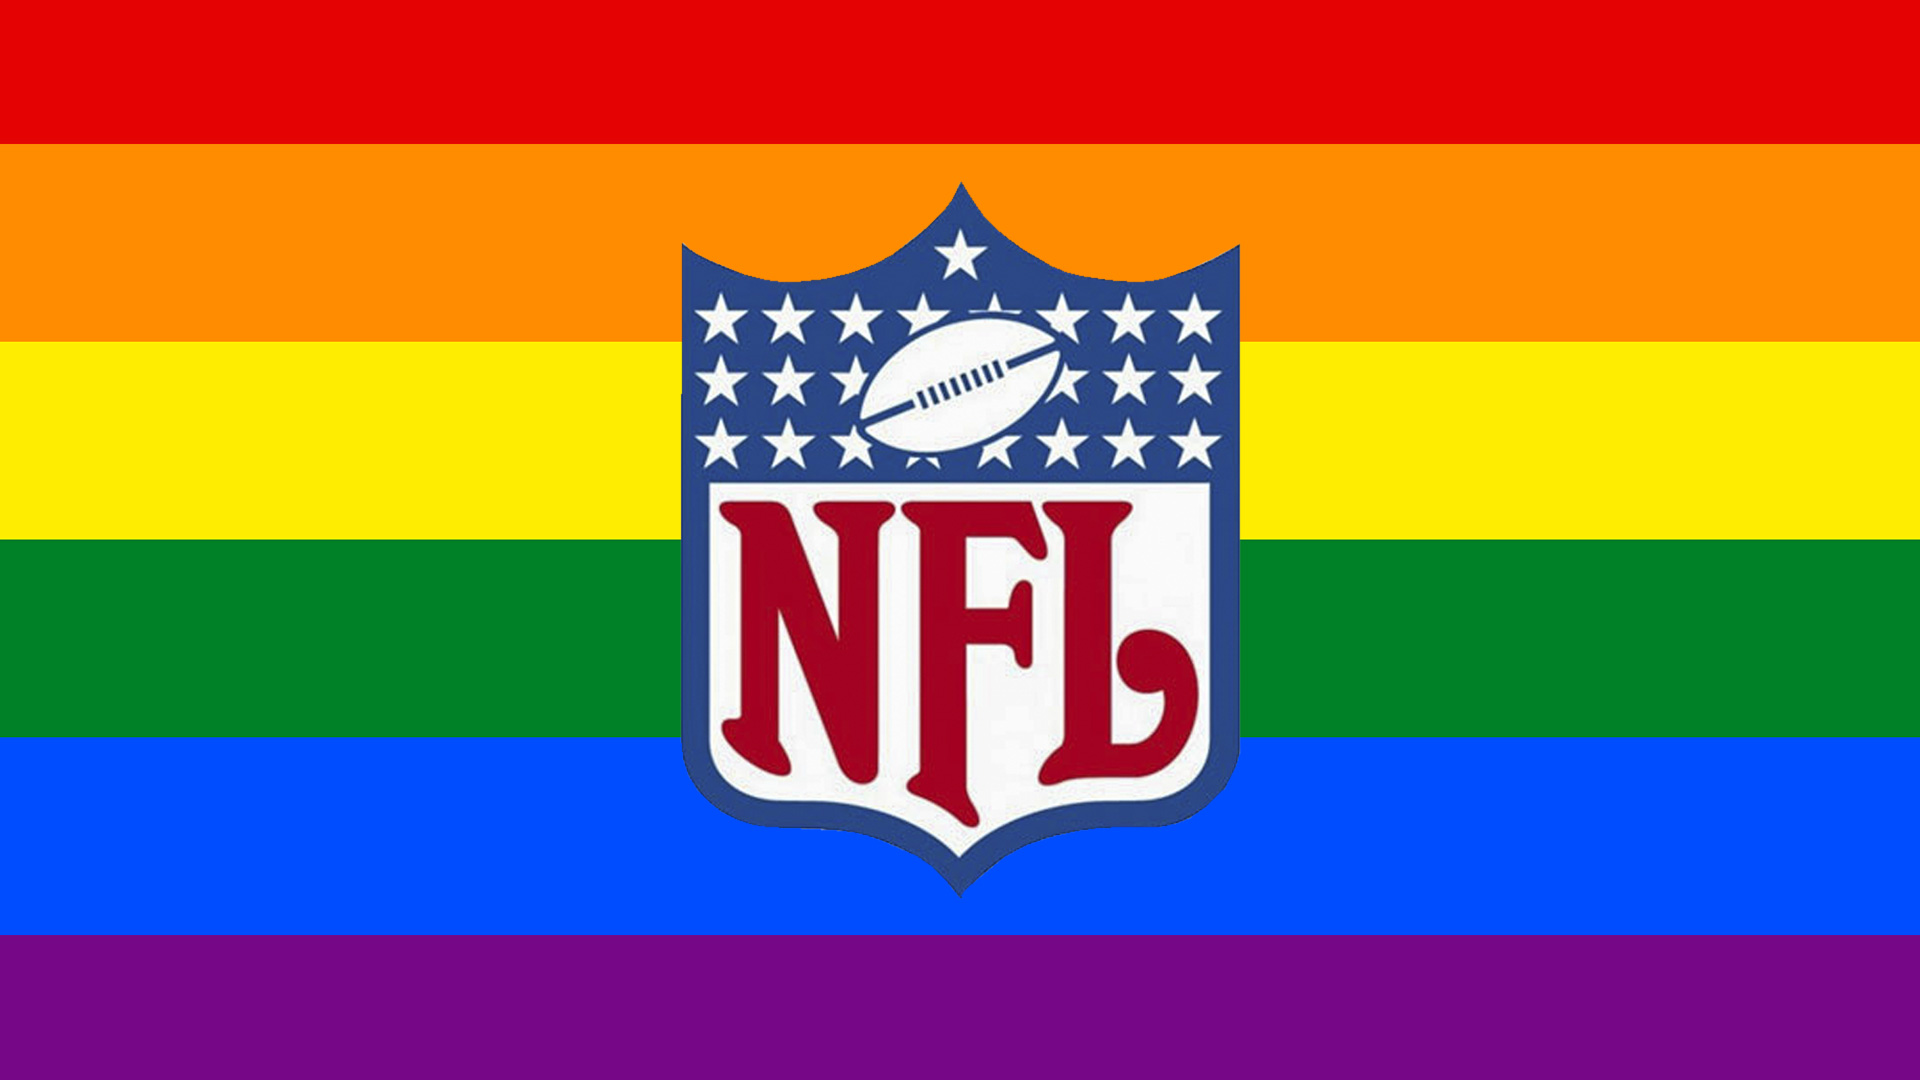 Gays in the nfl